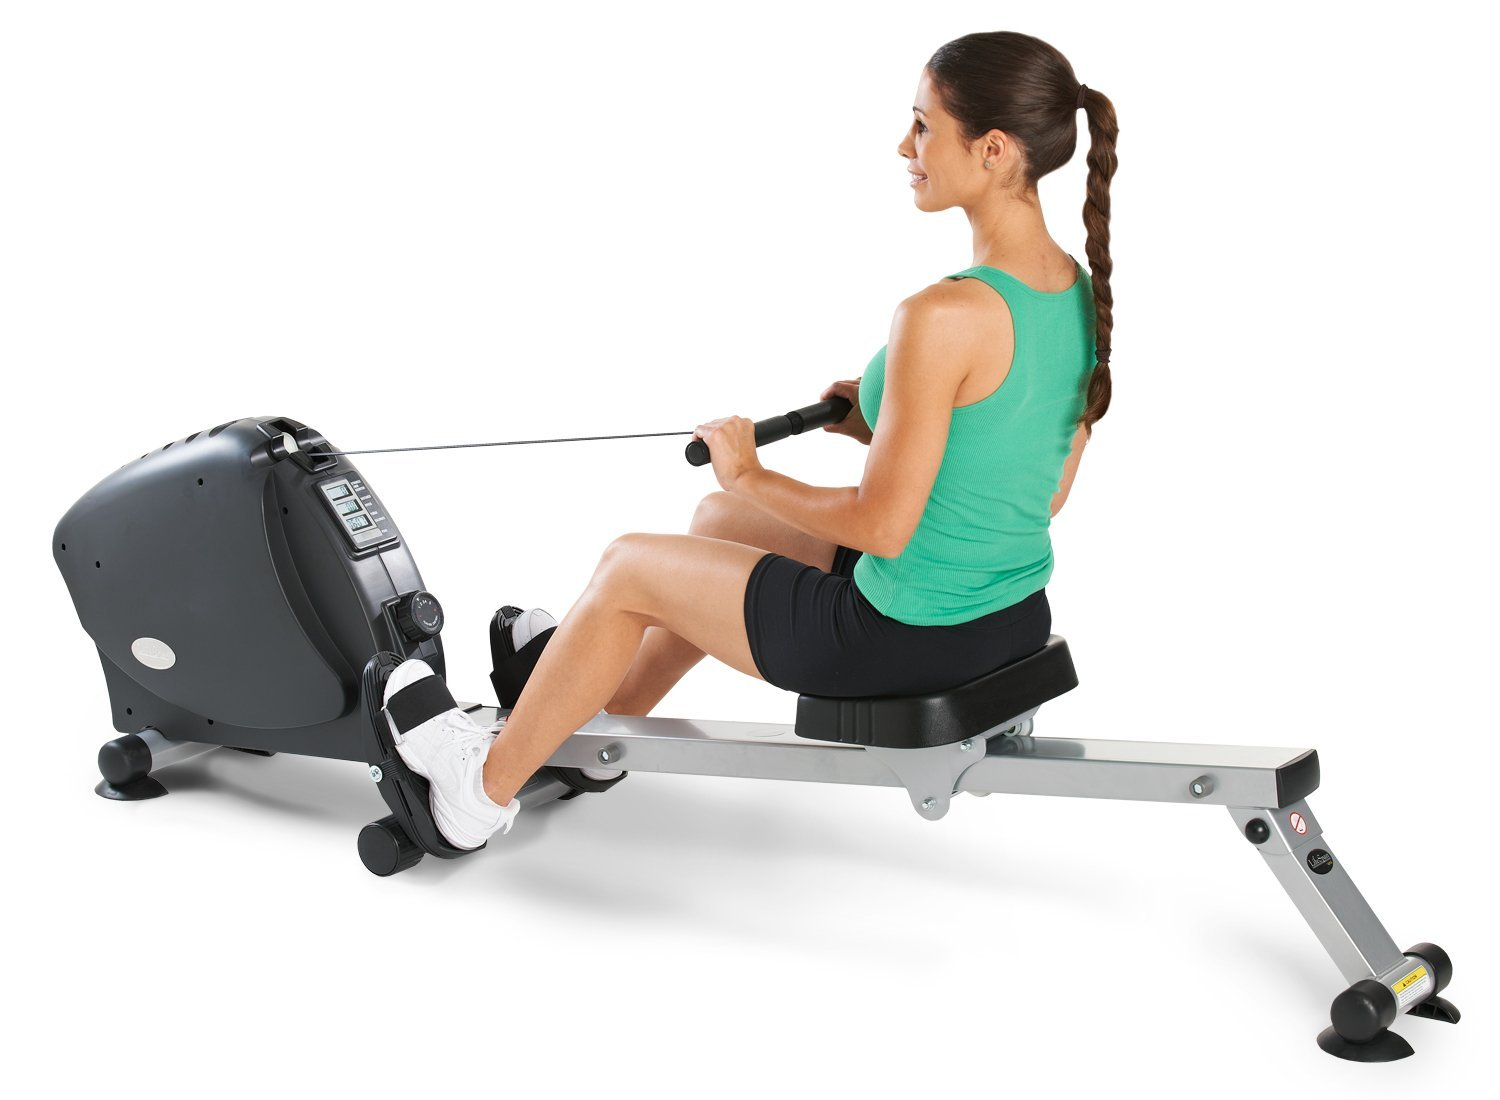 6 Best Compact Rowing Machine For Home Use (2016-2017)